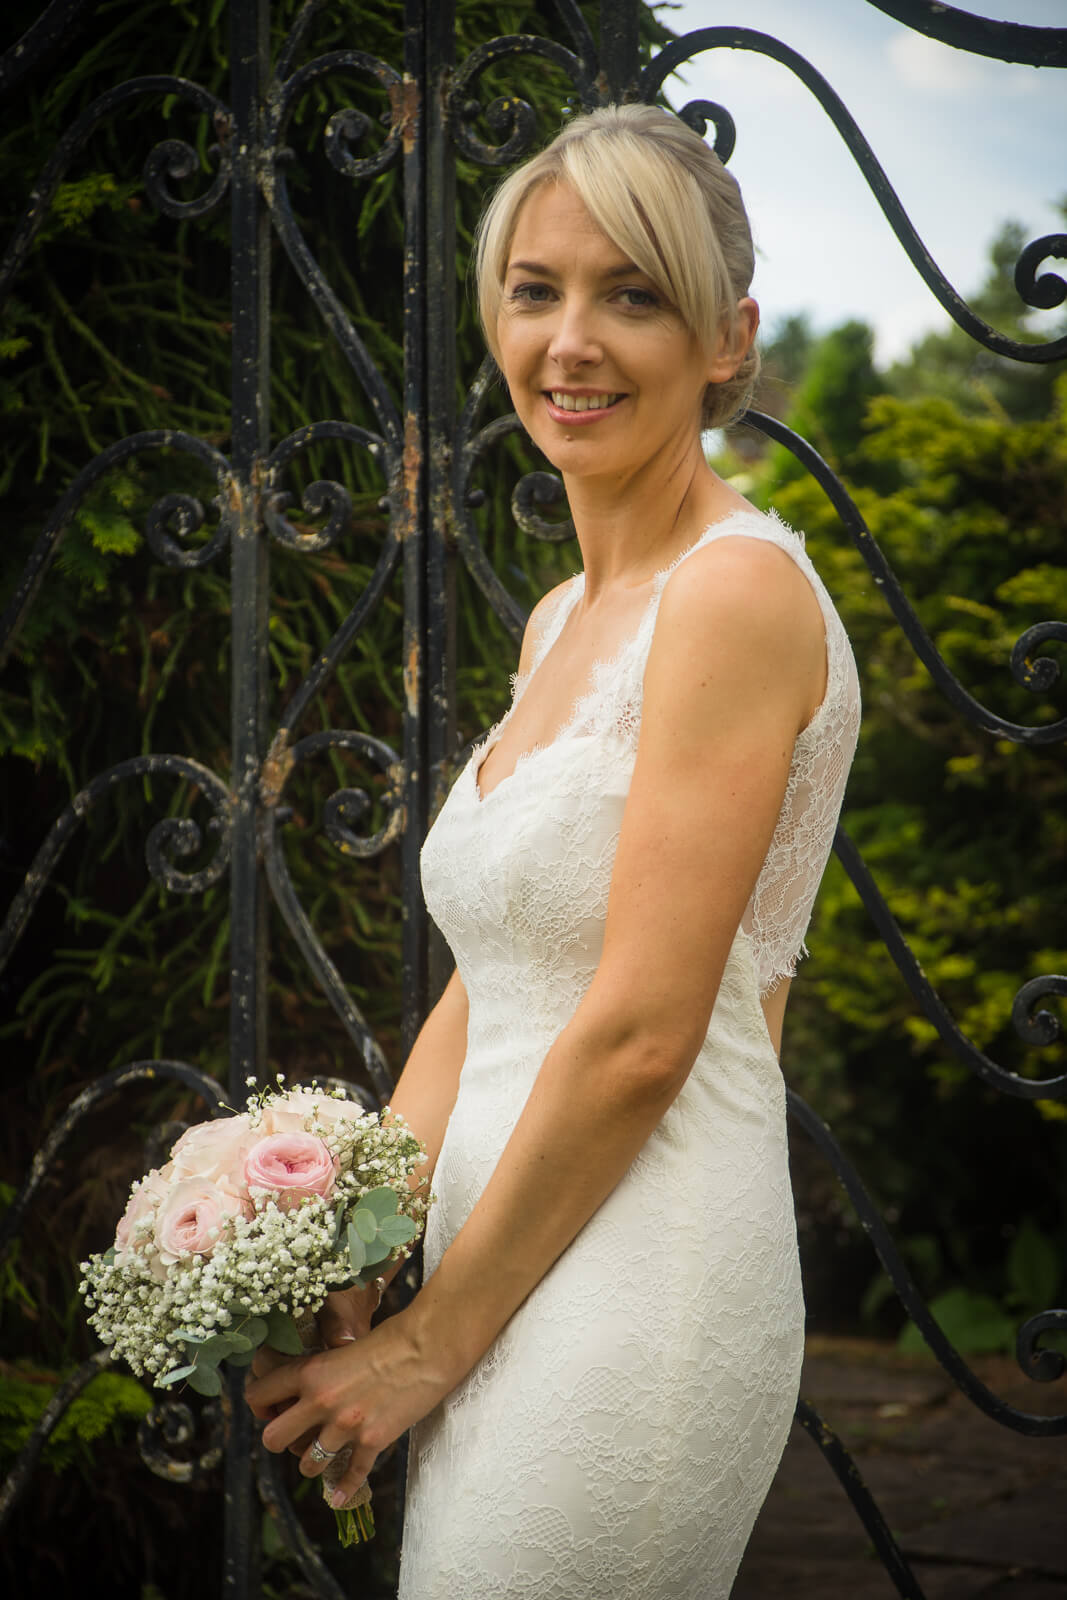 Portrait of the bride with pink rose bouquet against iron gate.